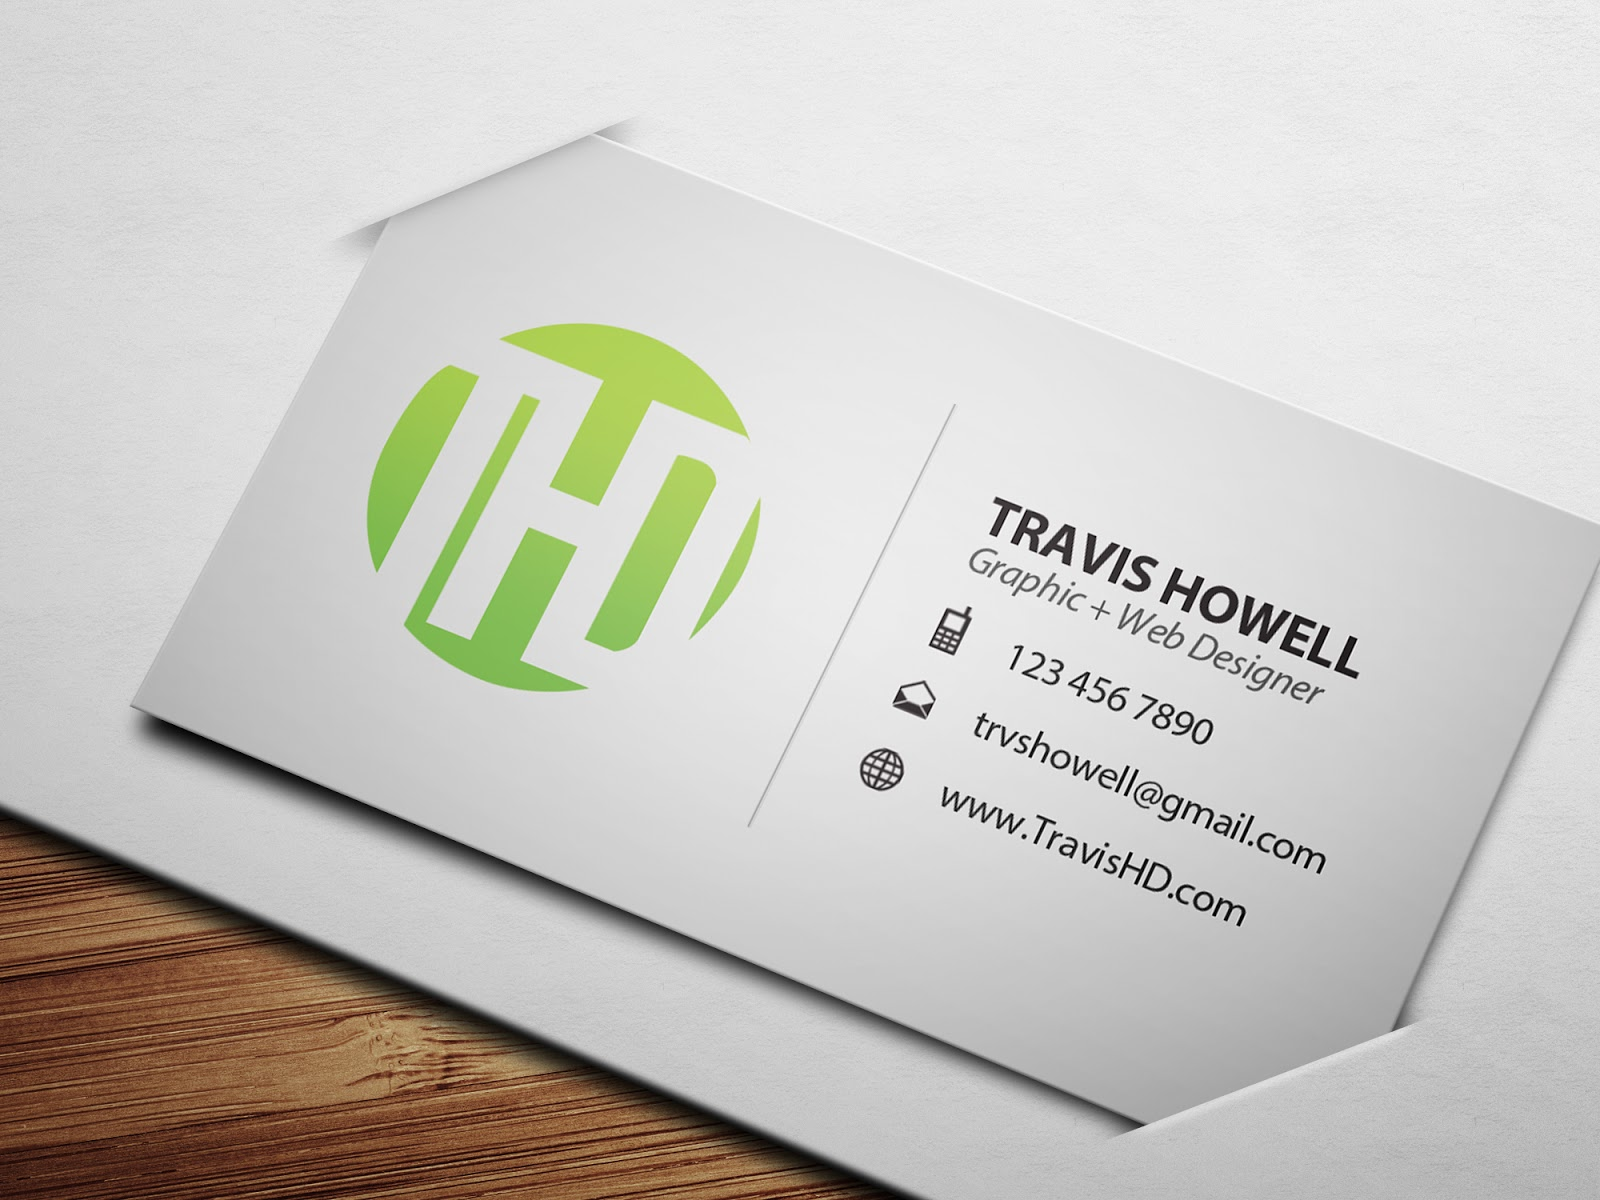 Awesome business cards business card tips awesome business cards reheart Gallery